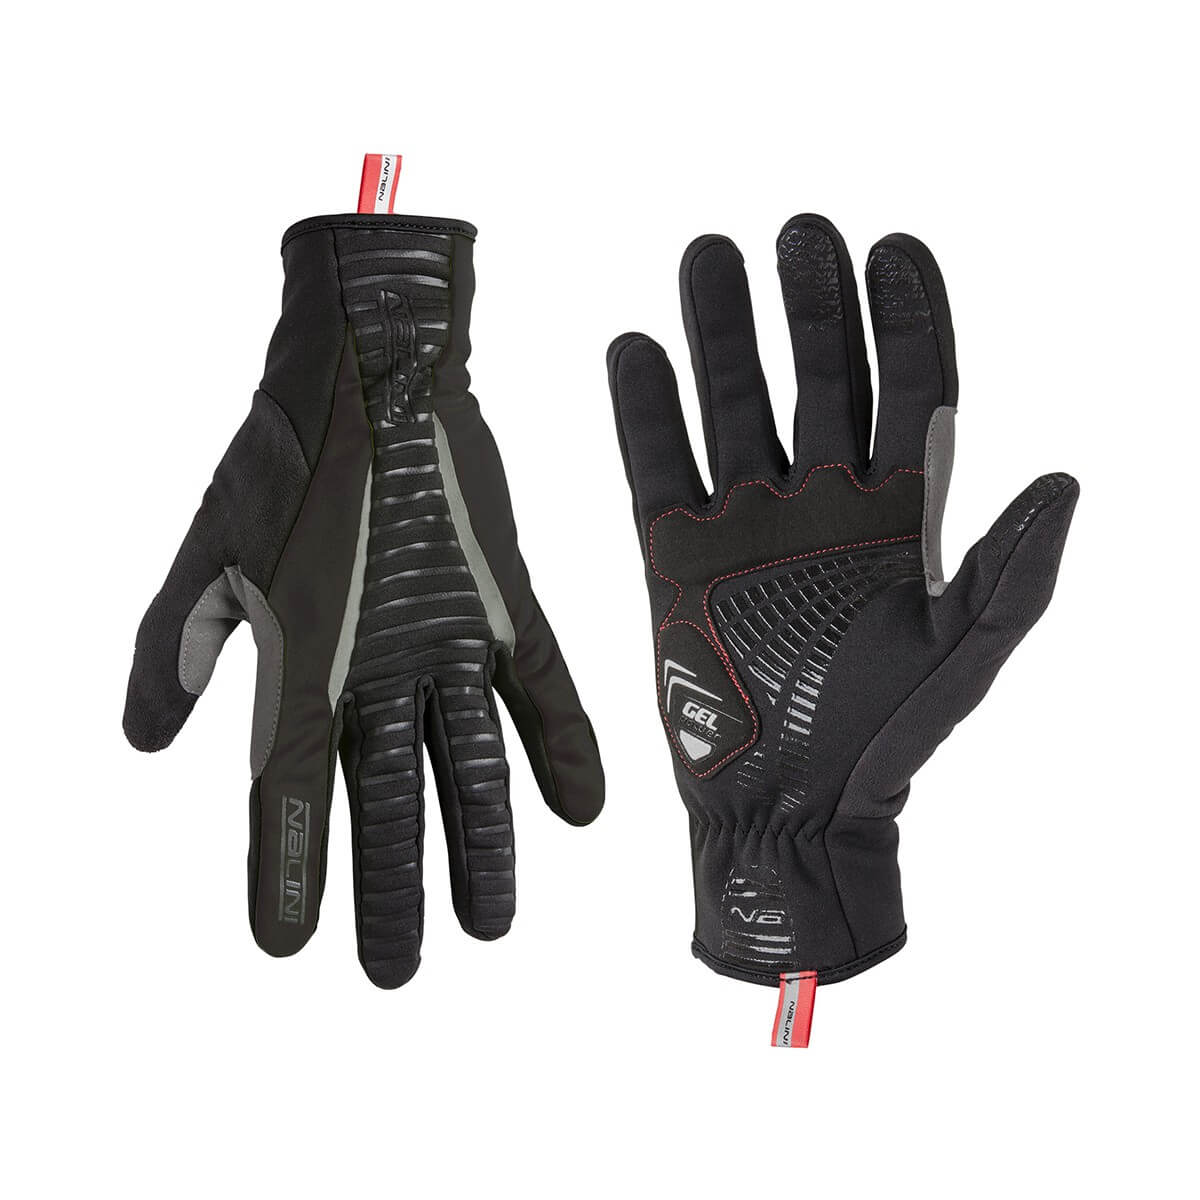 nalini-jesien-zima-2017-prime-thermo-gloves-4000